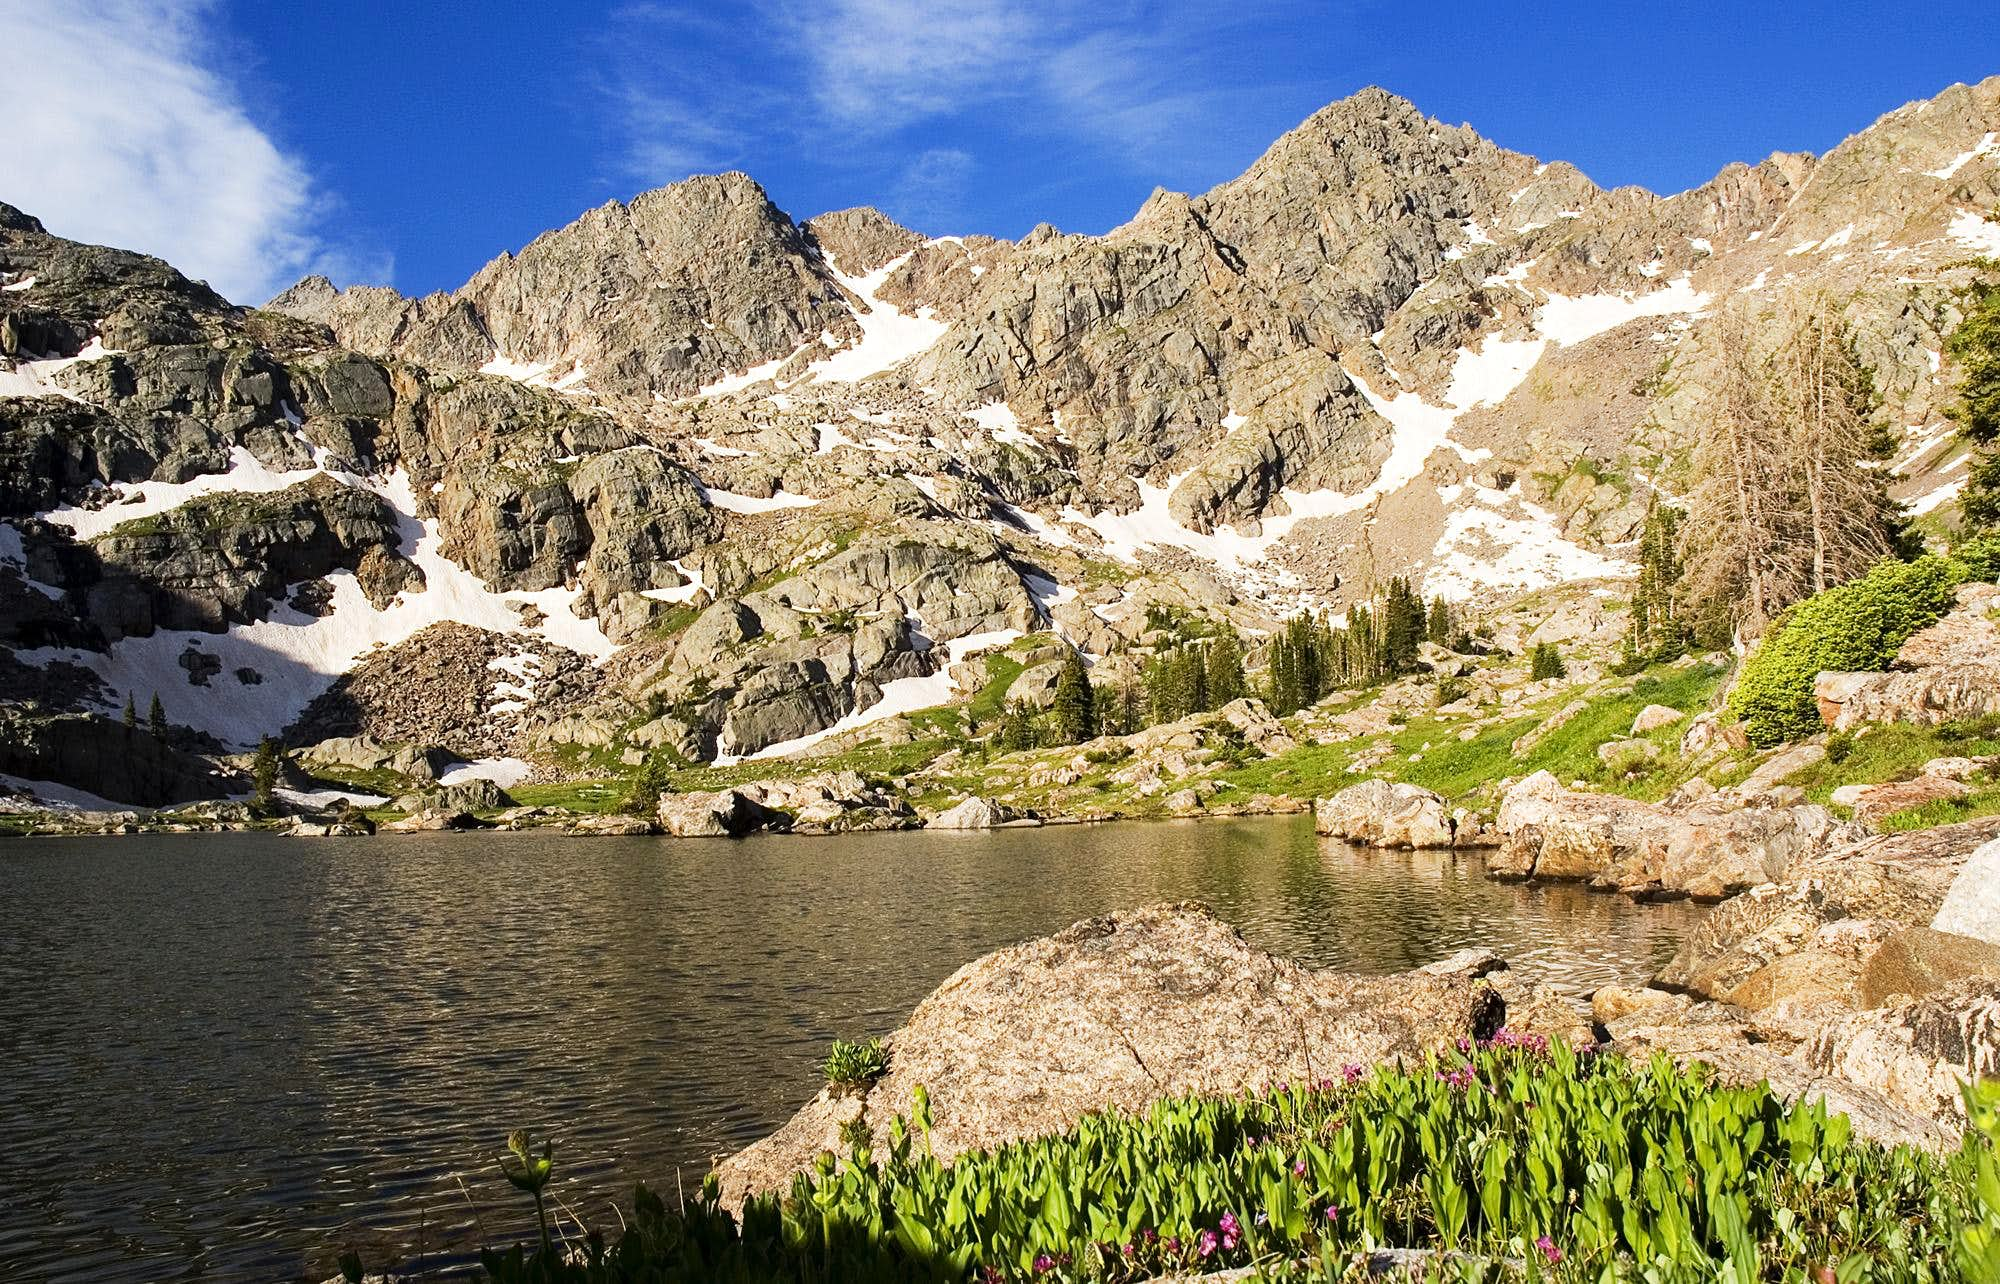 Gore Range / Eagles Nest Wilderness - Kneeknocker Pass, Duck and Bubble Lakes